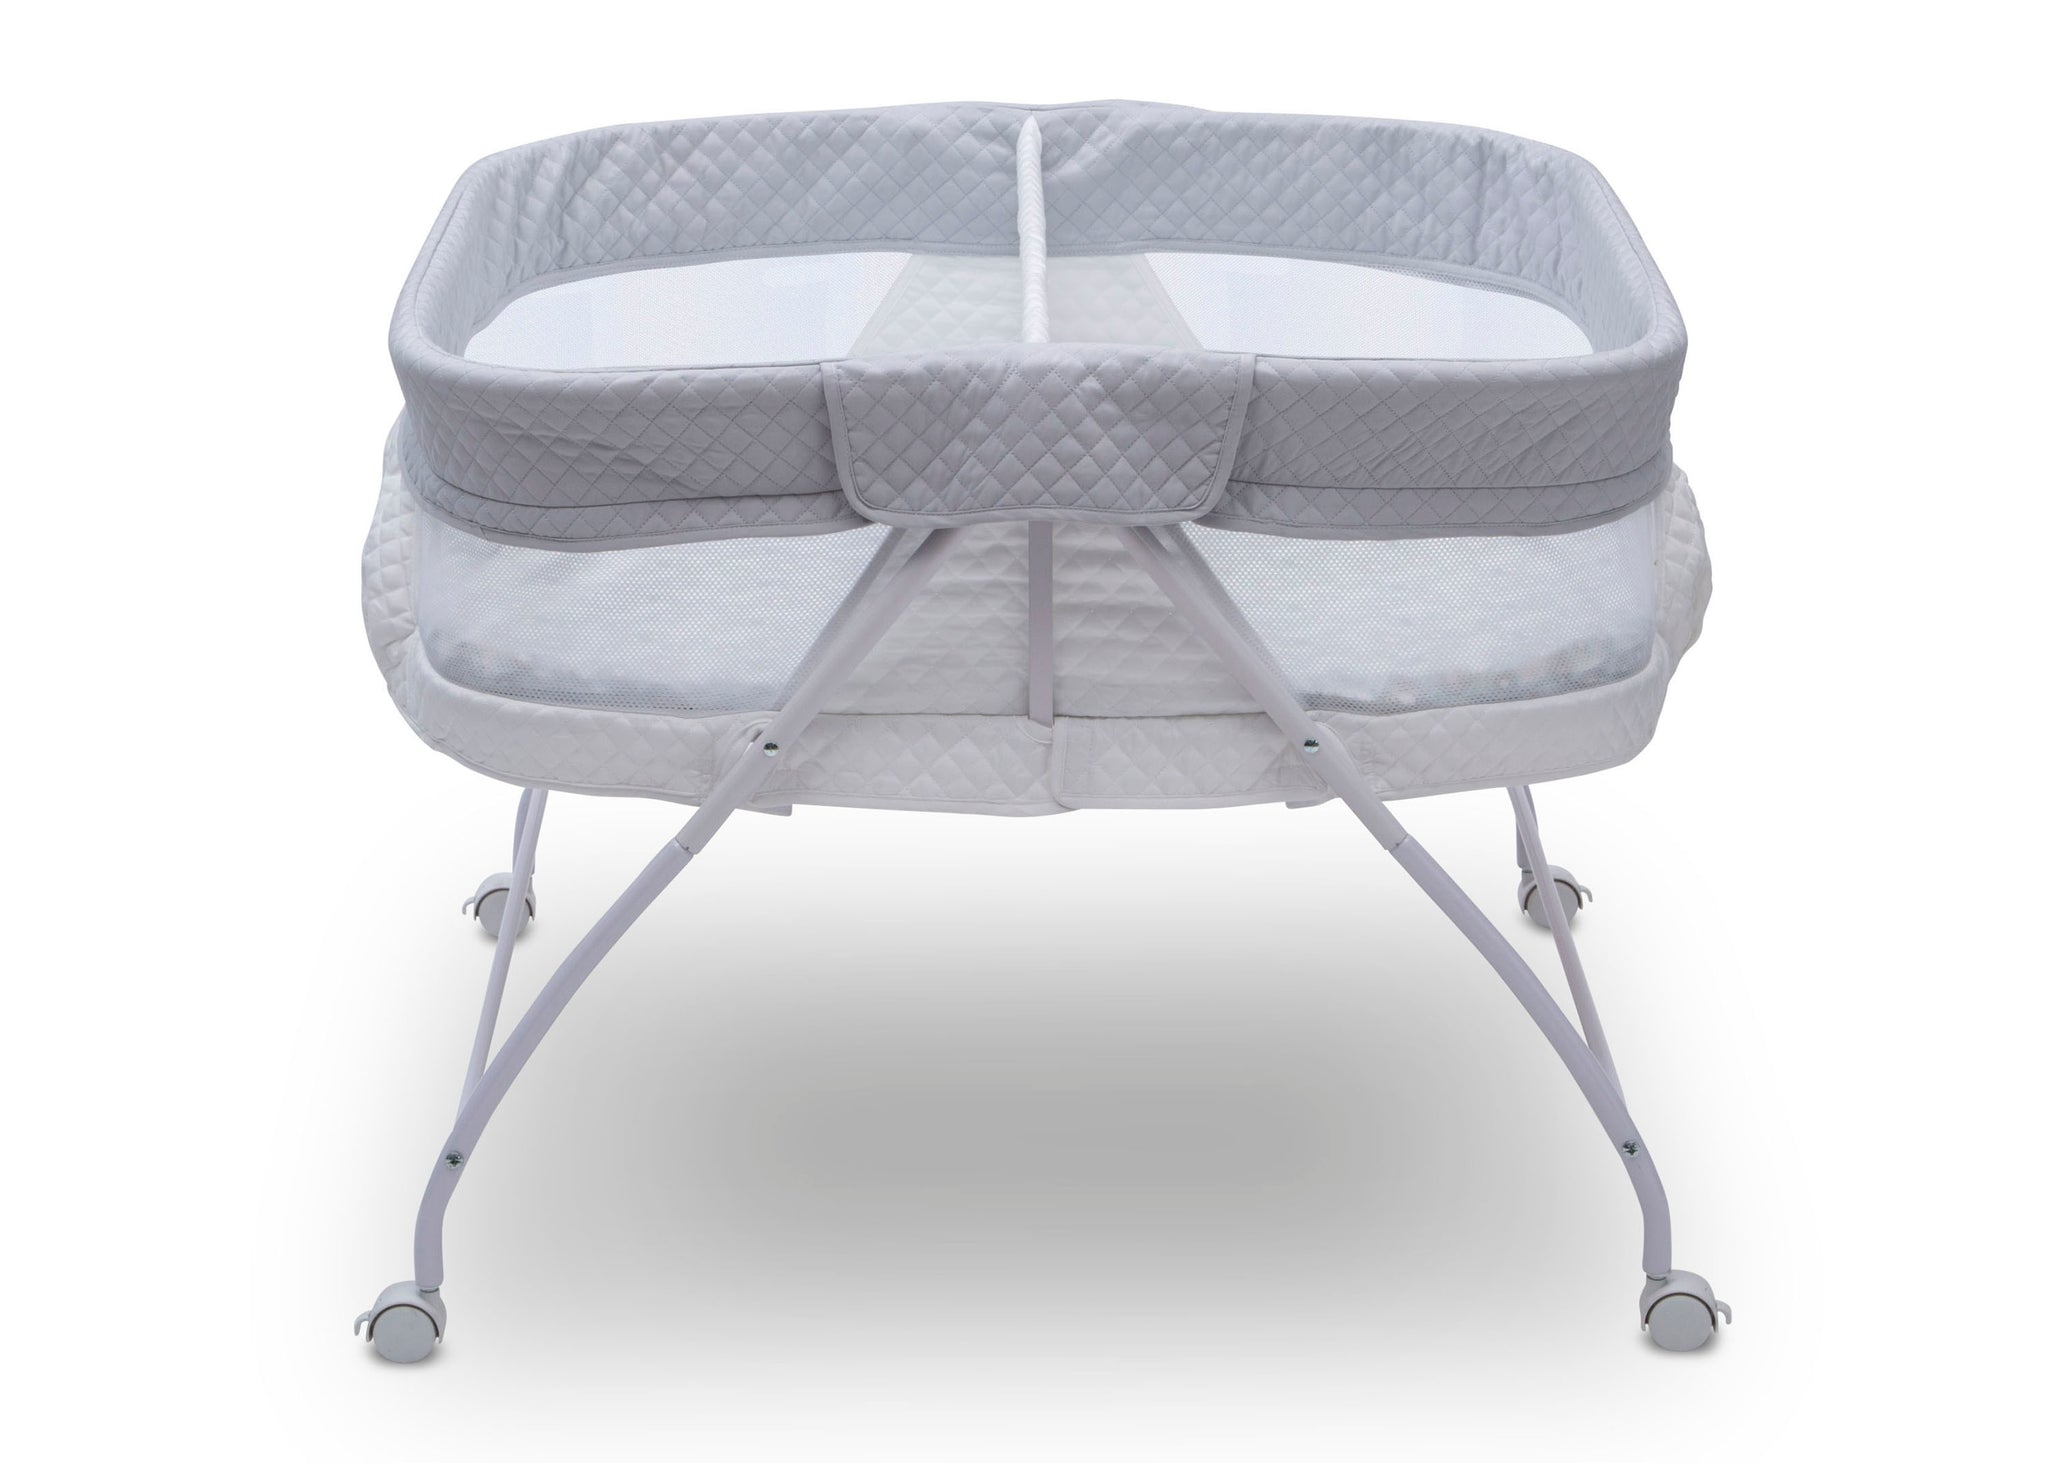 Little Folks by Delta Children Aqua Geo (2040) Twin EZ Fold Ultra Compact Double Bassinet, Front Silo View